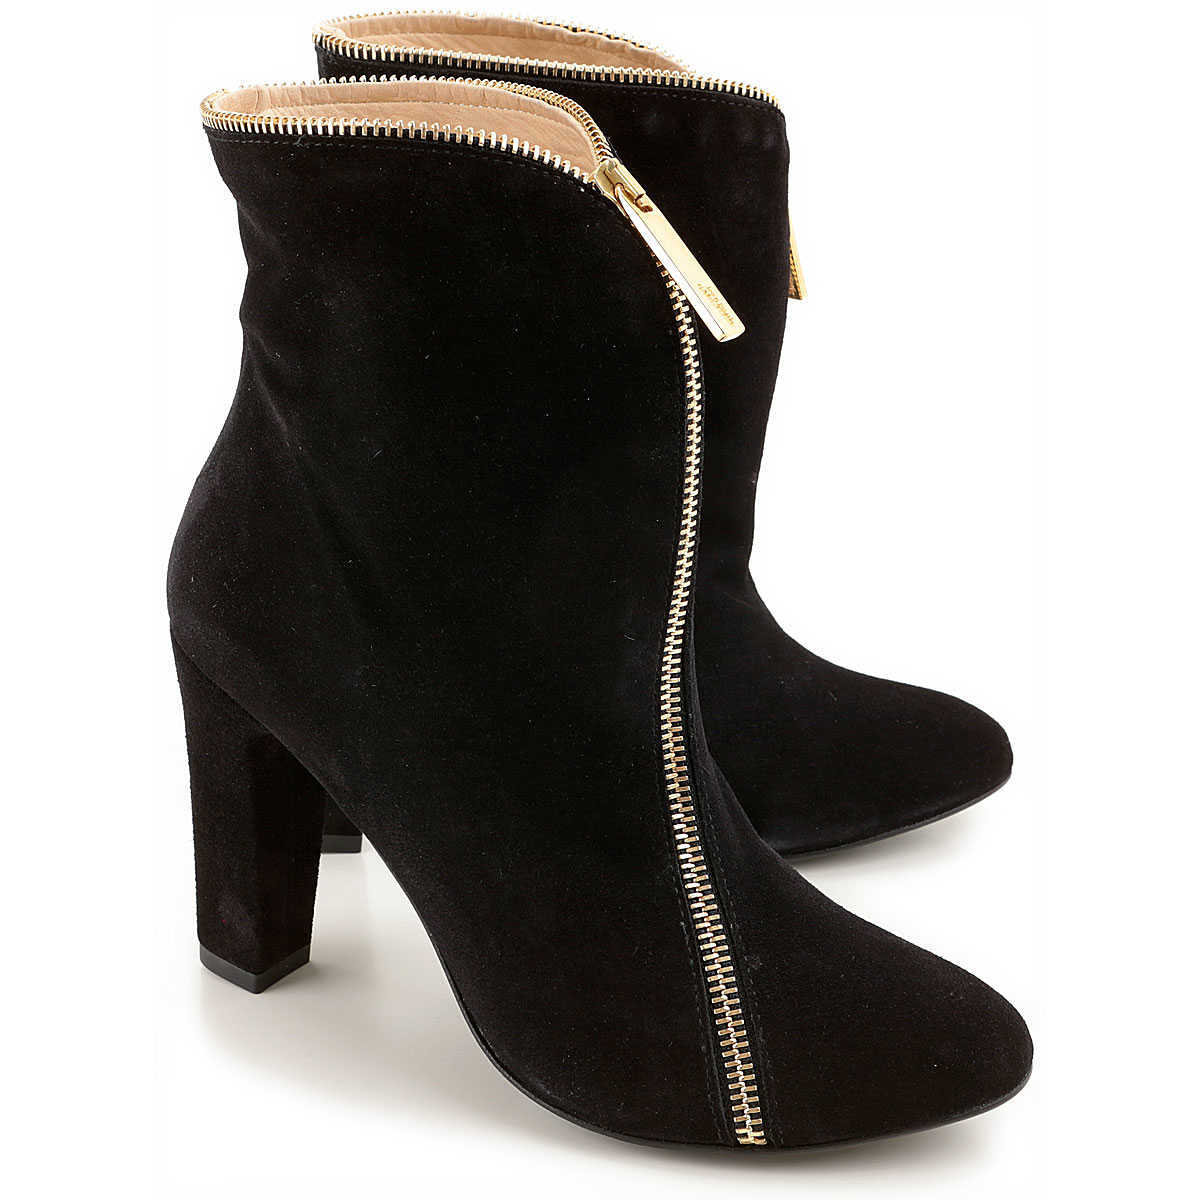 J.P. Gaultier Boots for Women Booties On Sale in Outlet - GOOFASH